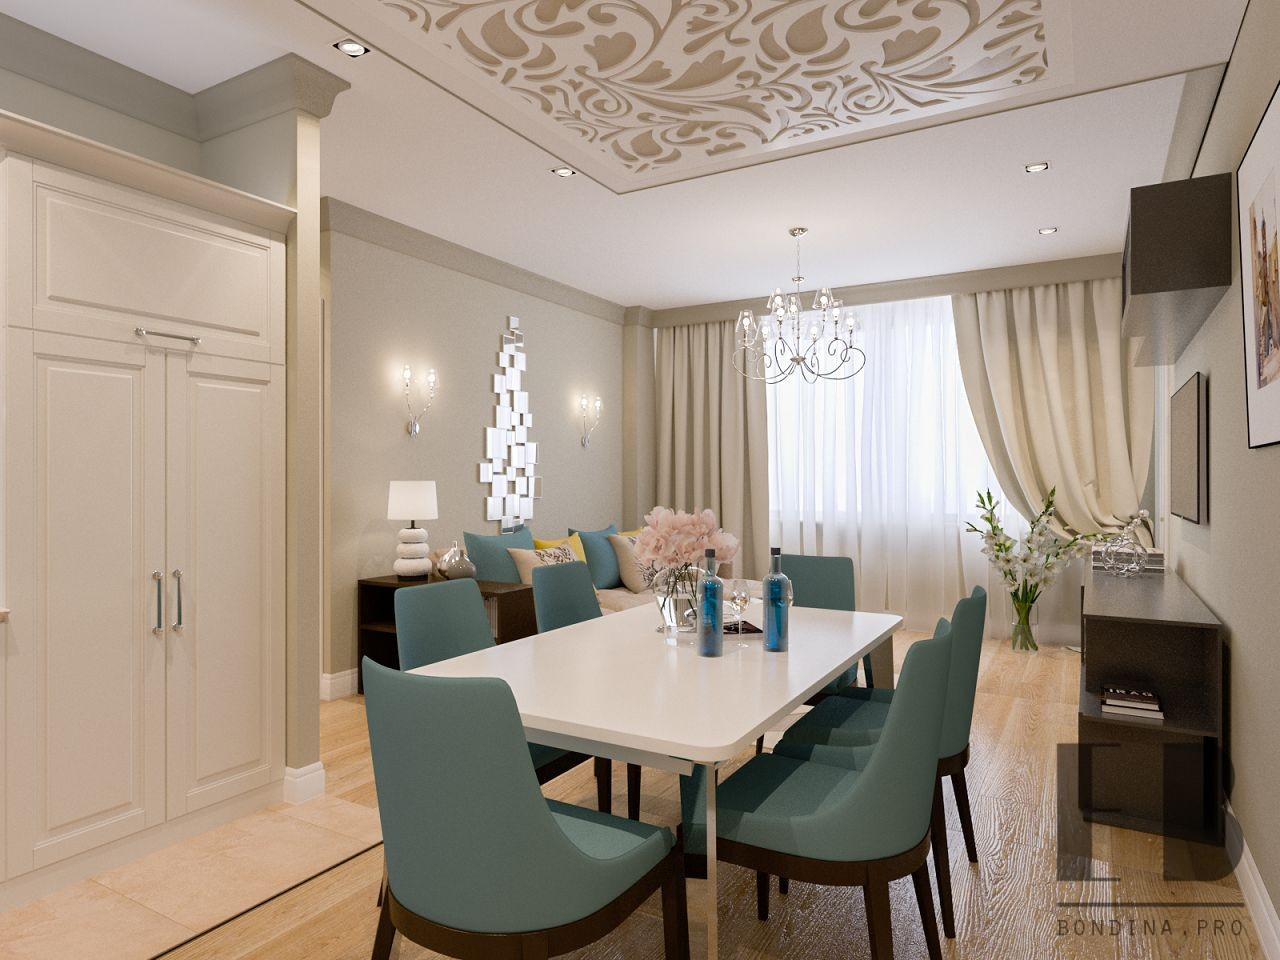 Beautiful and Tender dining room interior in beige and blue colors